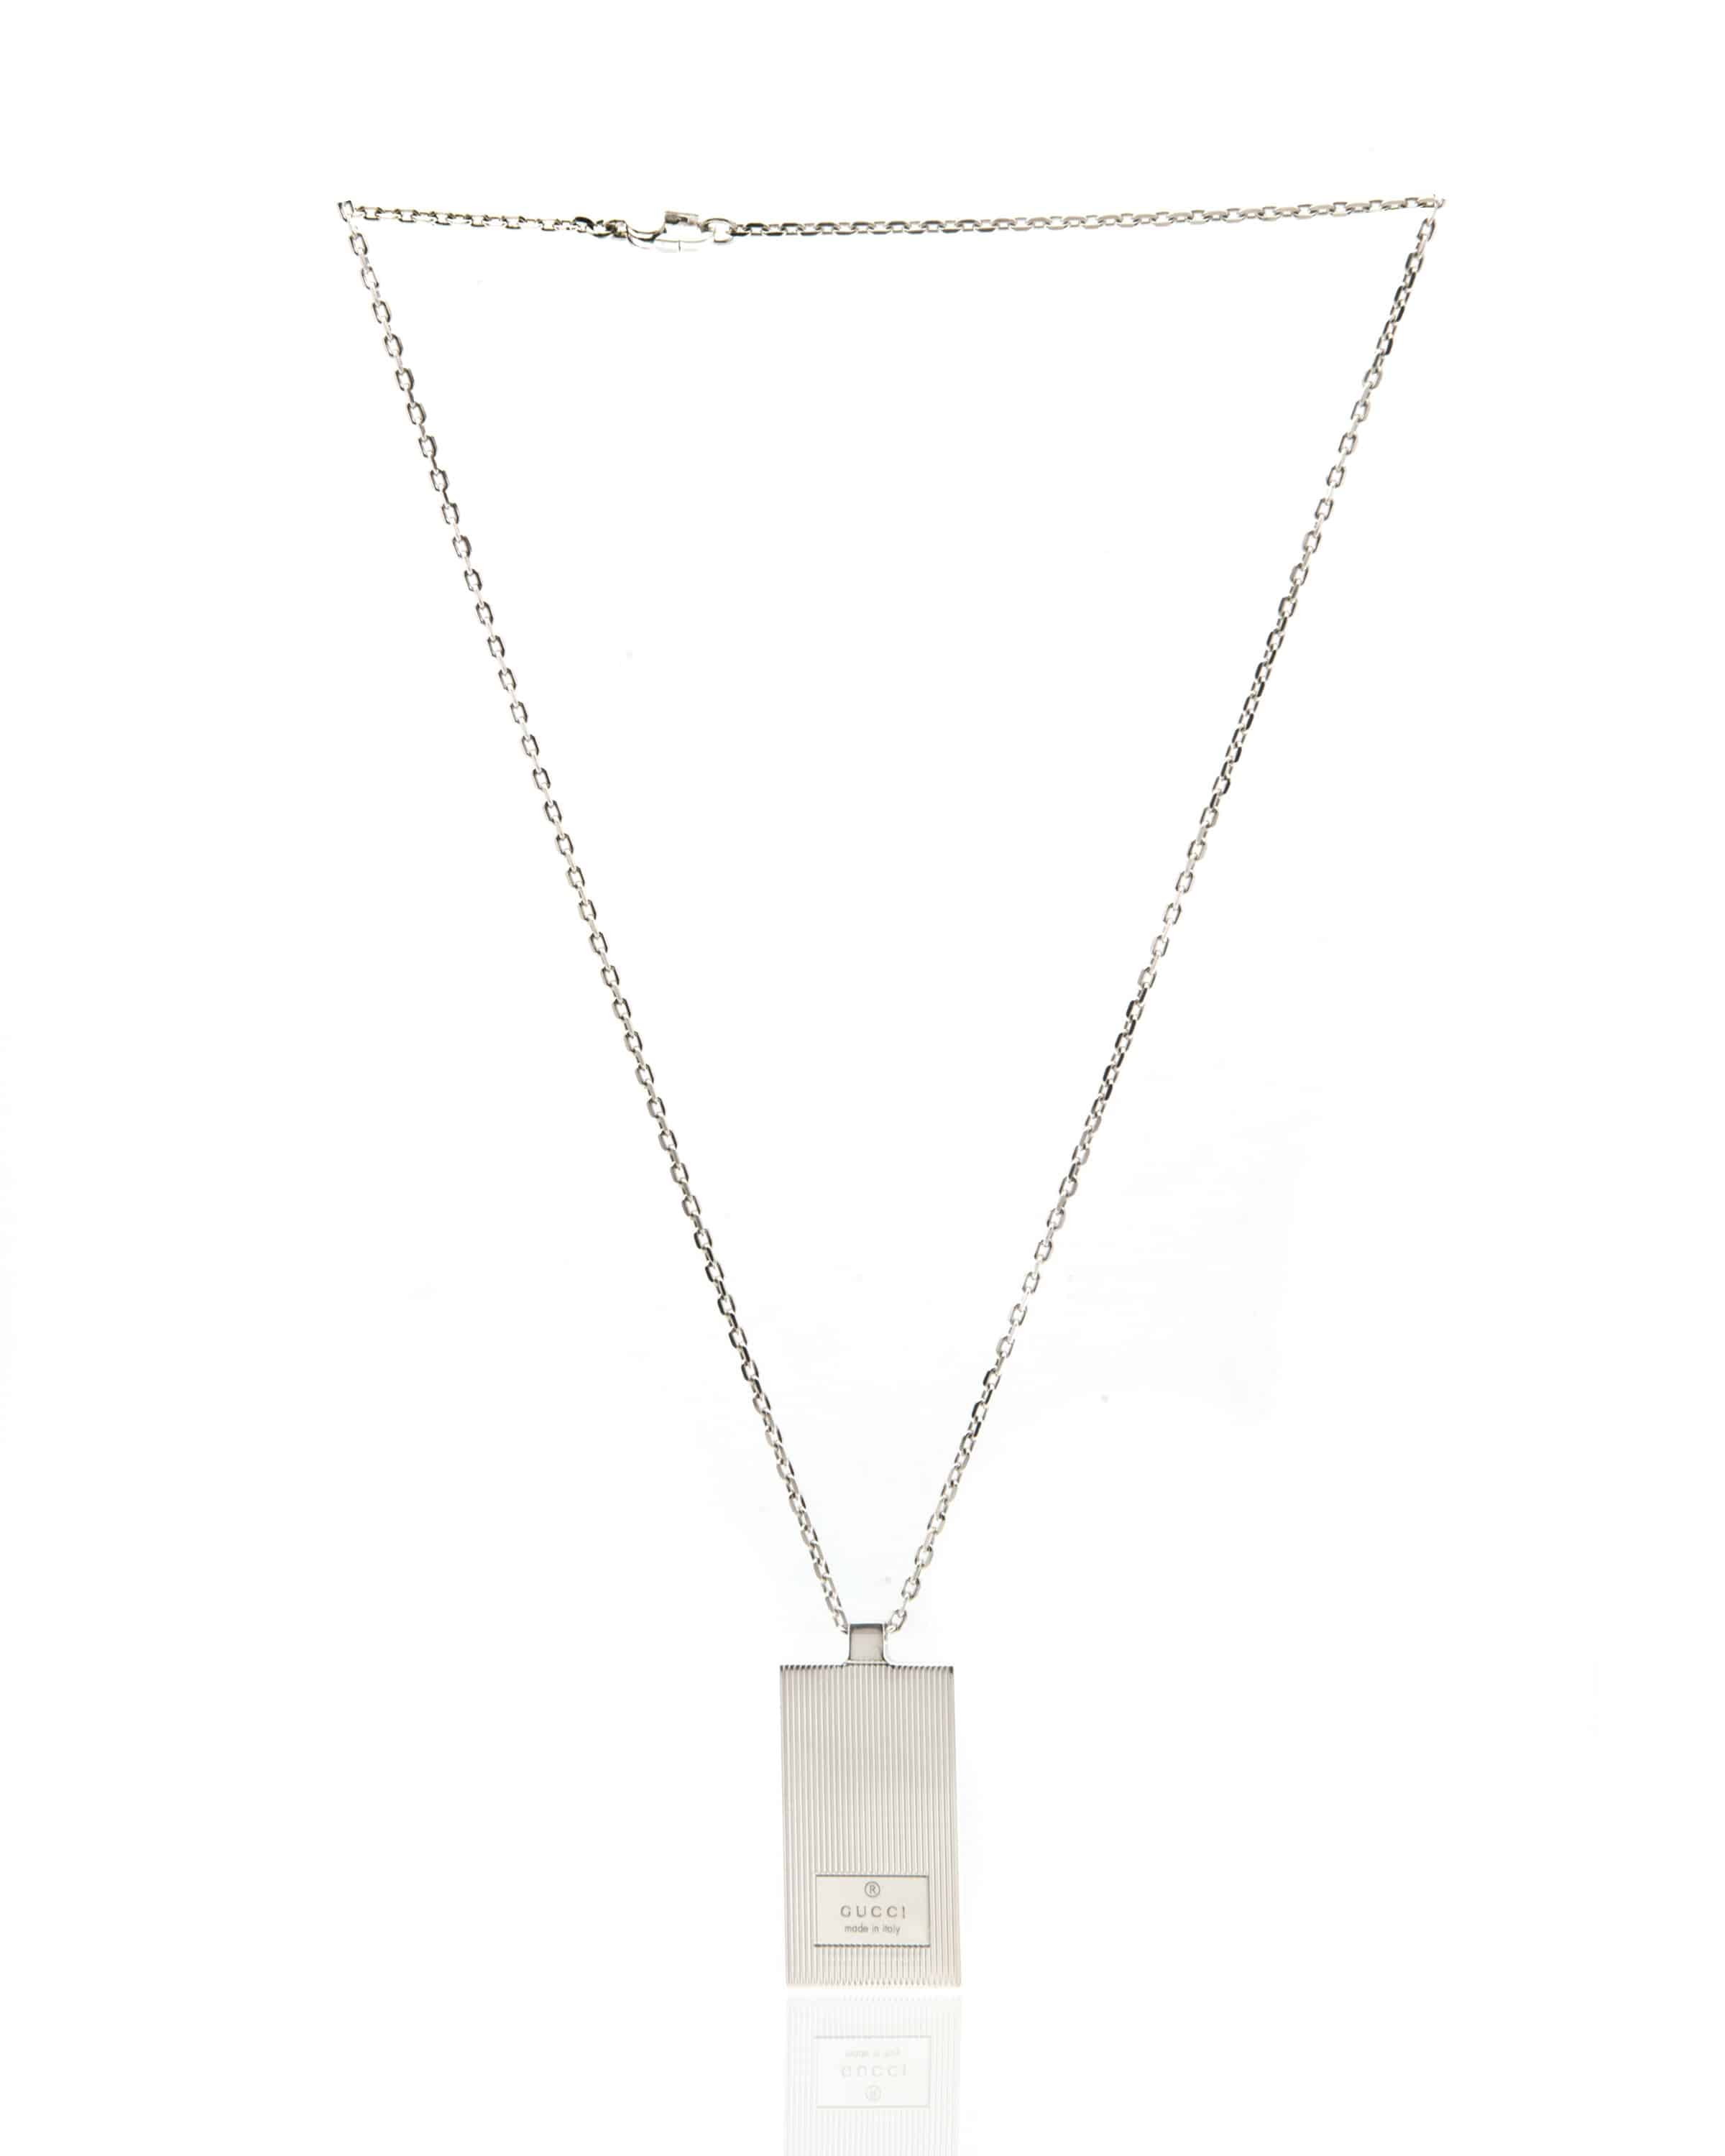 Gucci Mille Righe Sterling Silver Pendant Necklace 163074J8400810